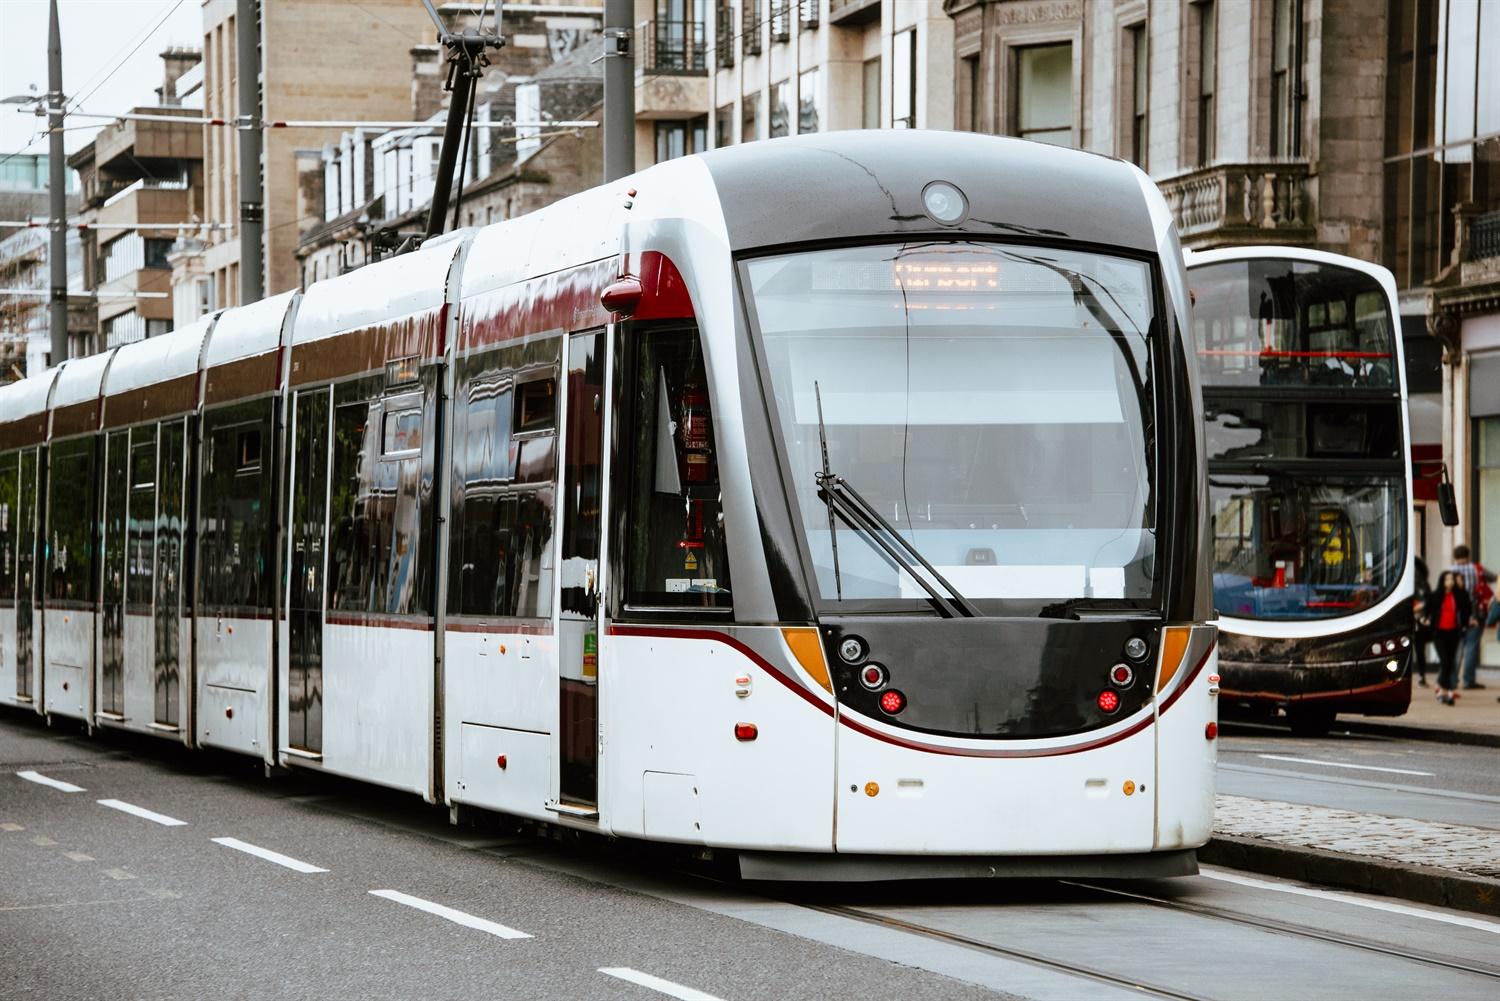 Urgent safety advice calls for louder horns on Edinburgh trams after pedestrian's death